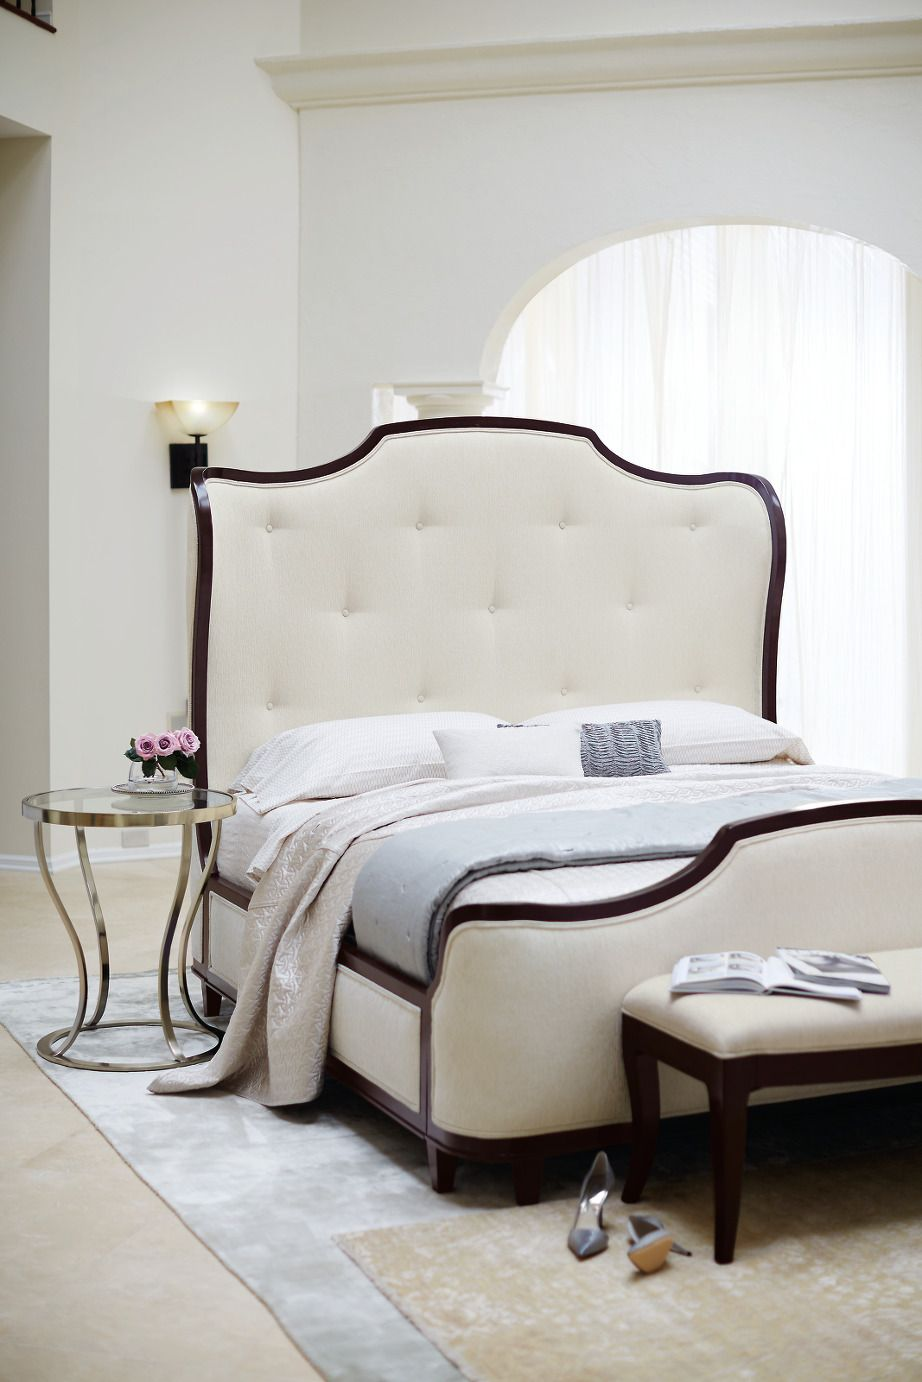 Bernhardt furniture miramont collection macqueen home